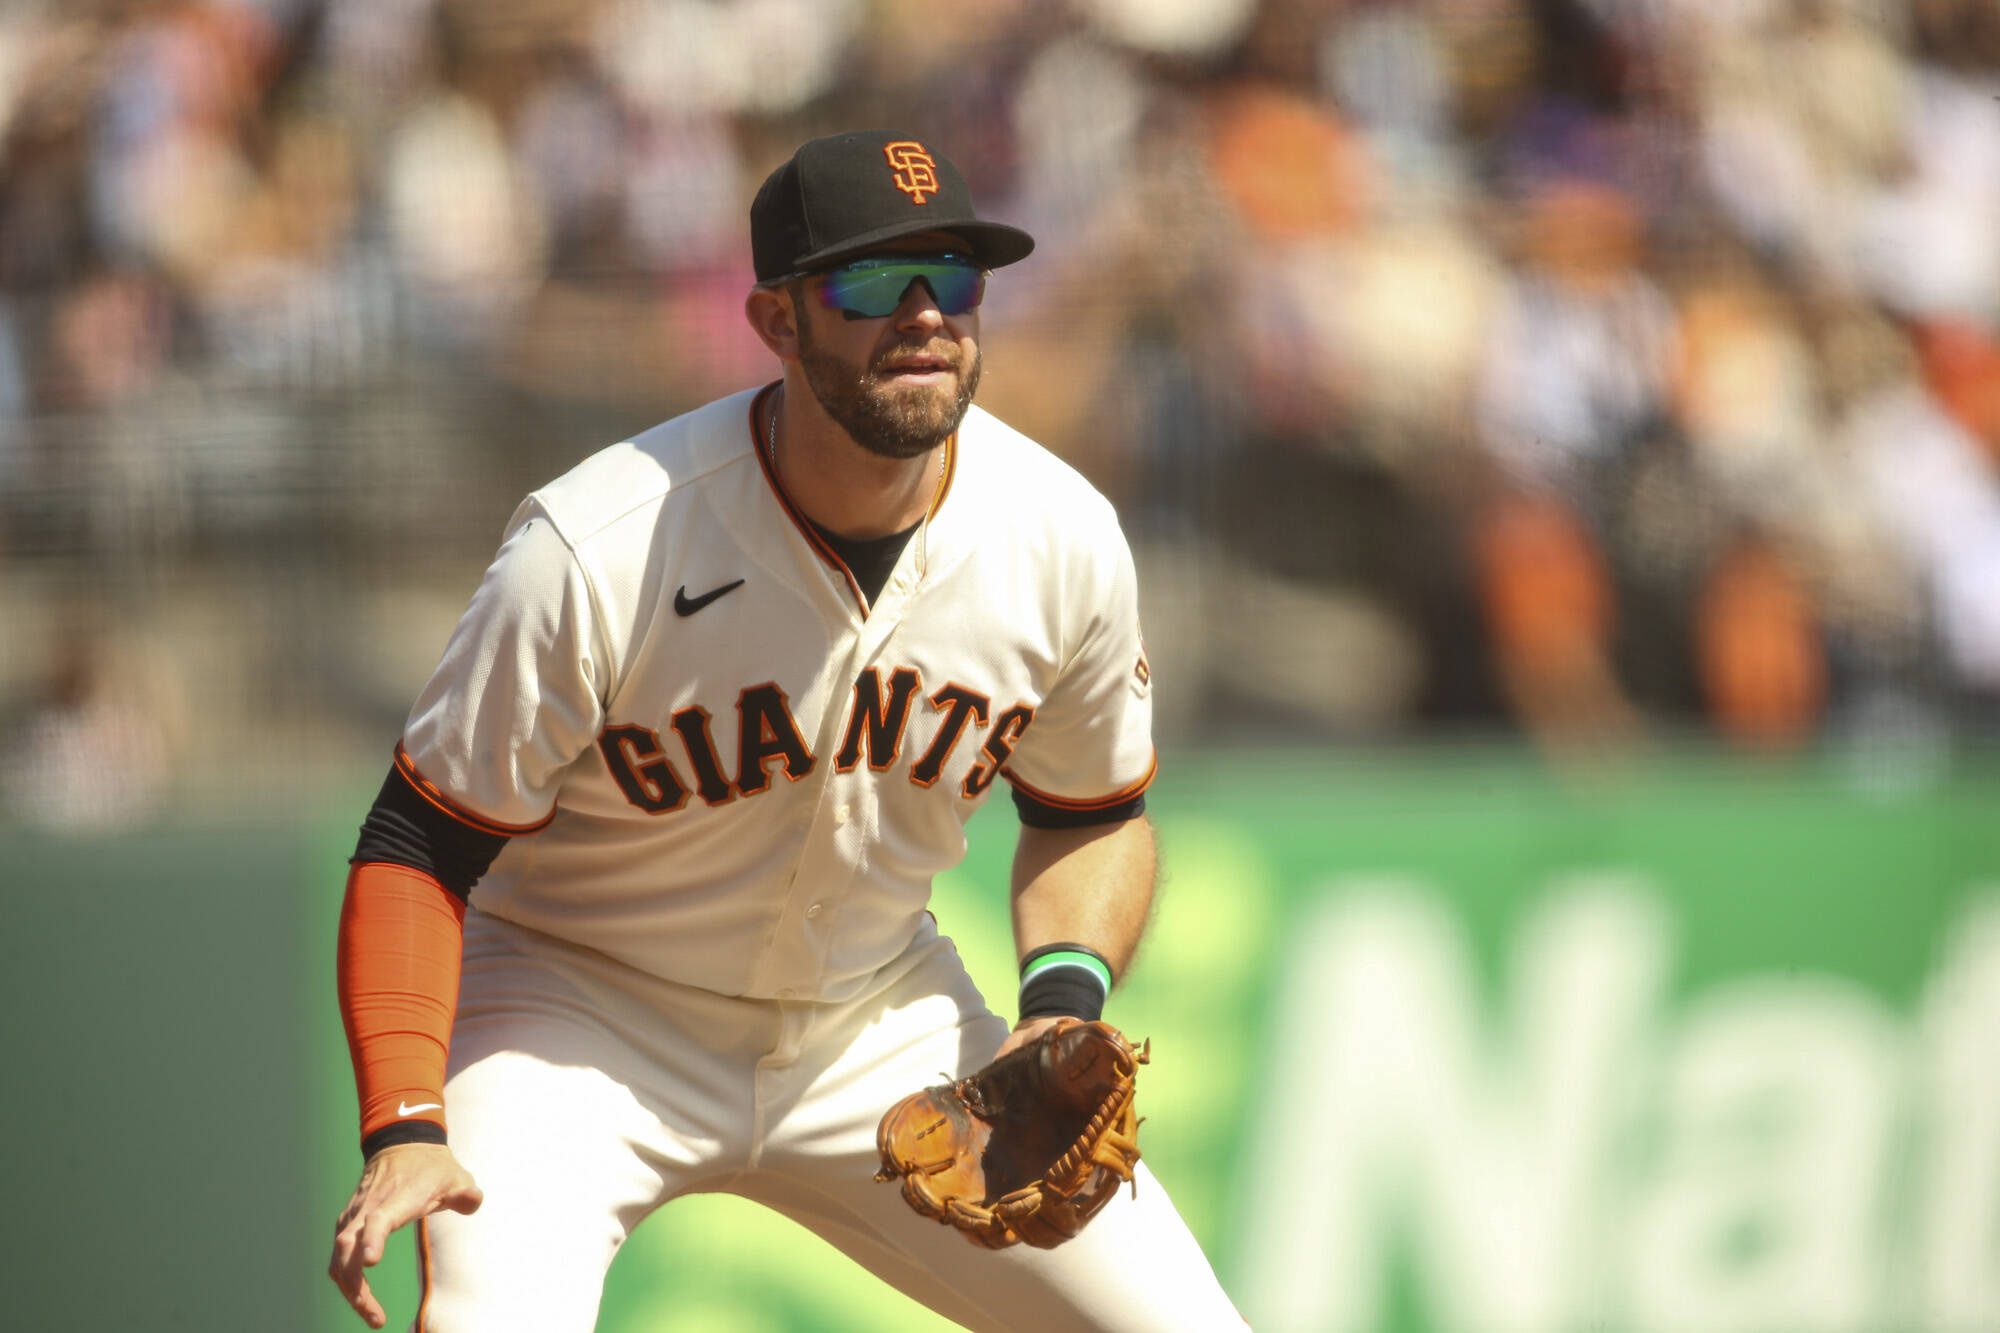 San Francisco Giants third baseman Evan Longoria says he thinks the Division Series is too early to play the Dodgers, given they were the two best teams in the National League. (Chris Victorio/Special to The Examiner)